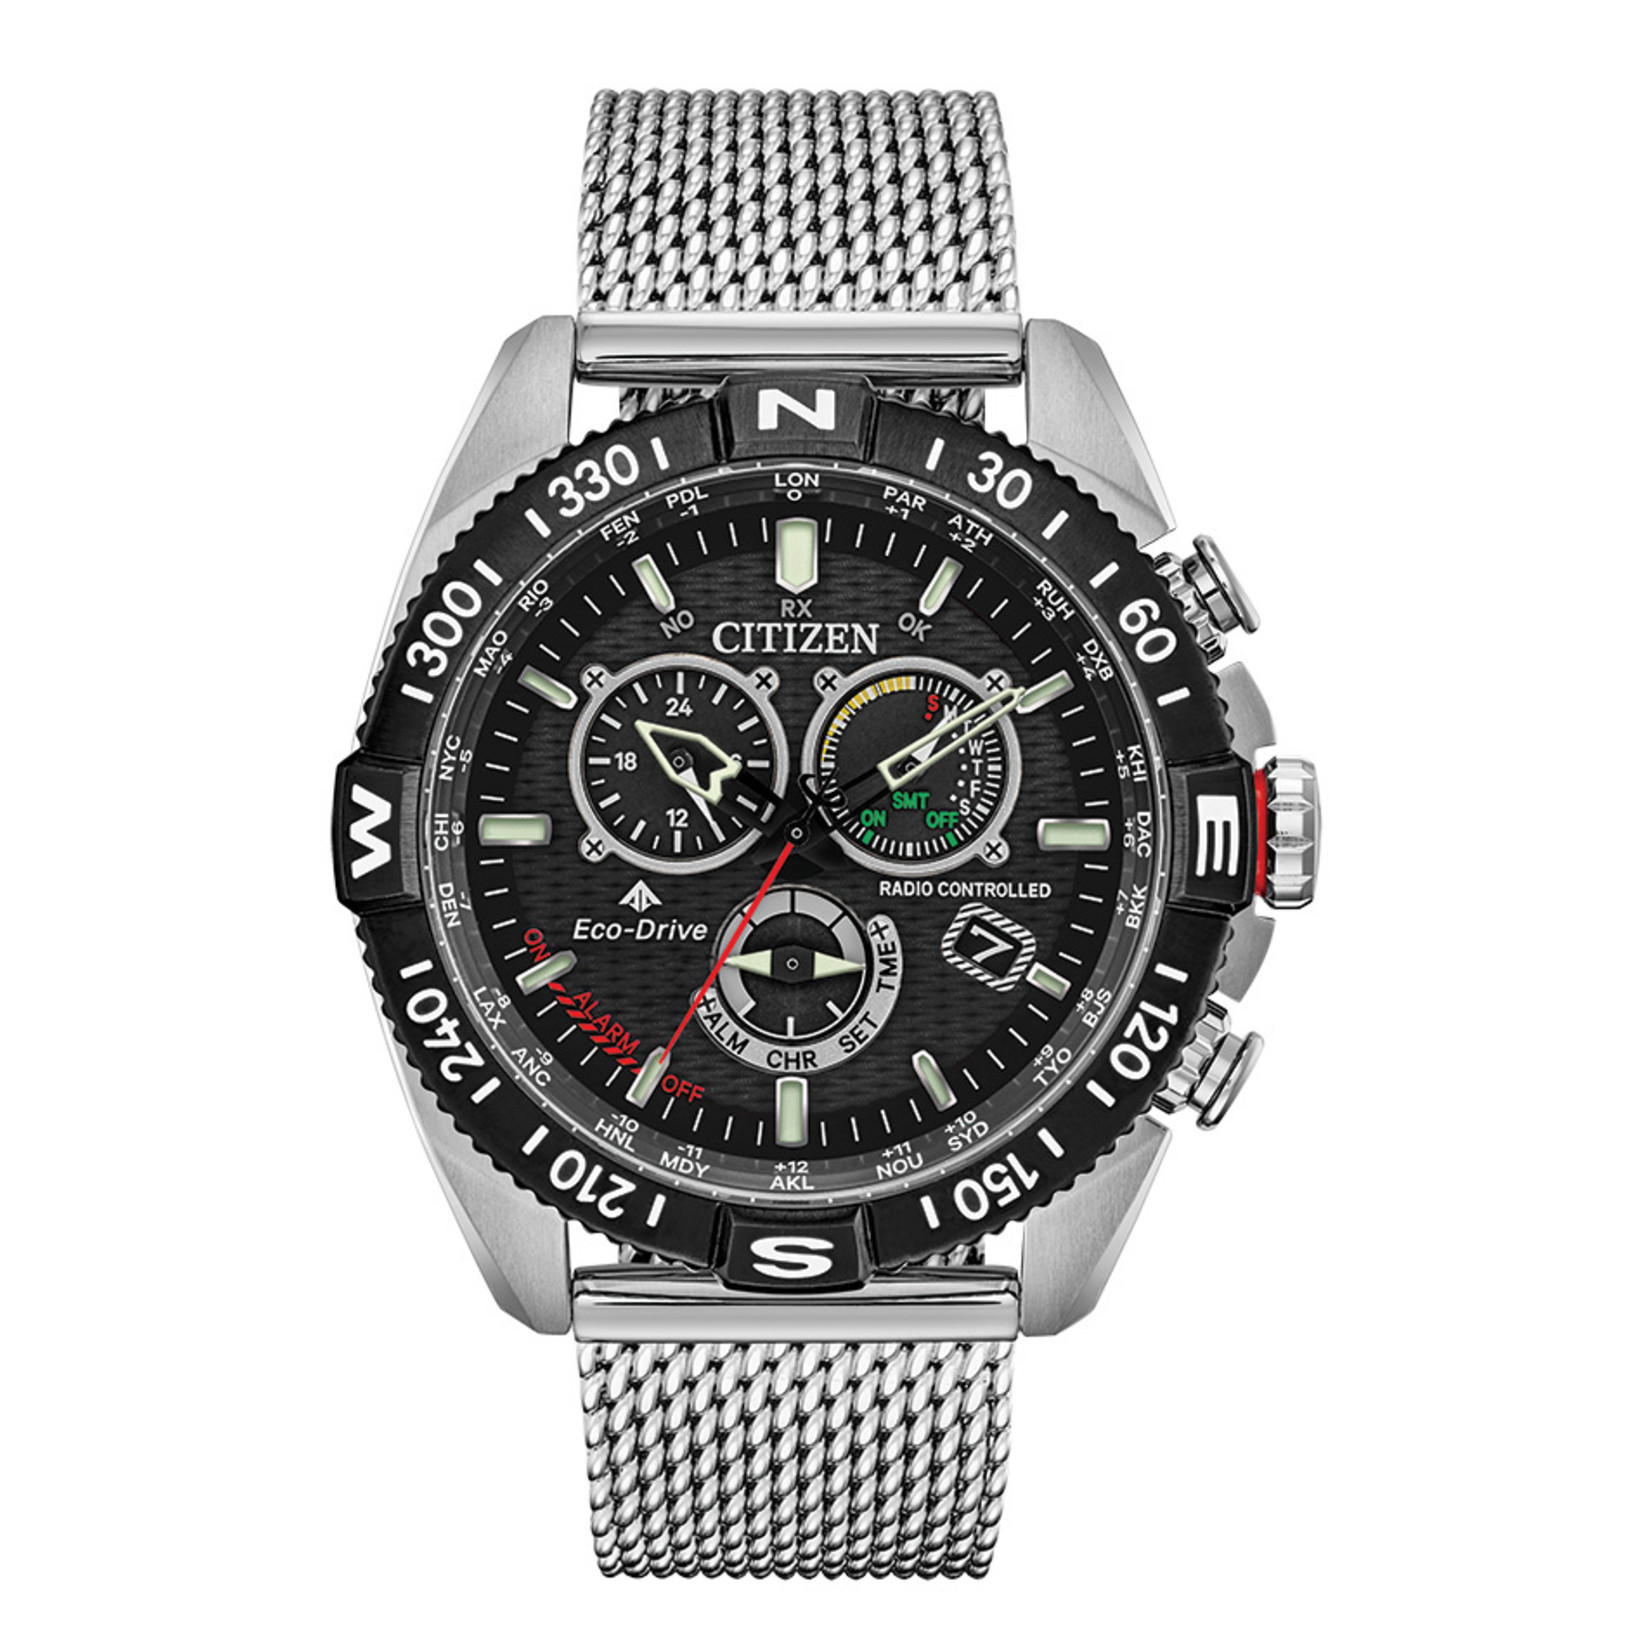 Citizen Citizen Promaster Navihawk Watch